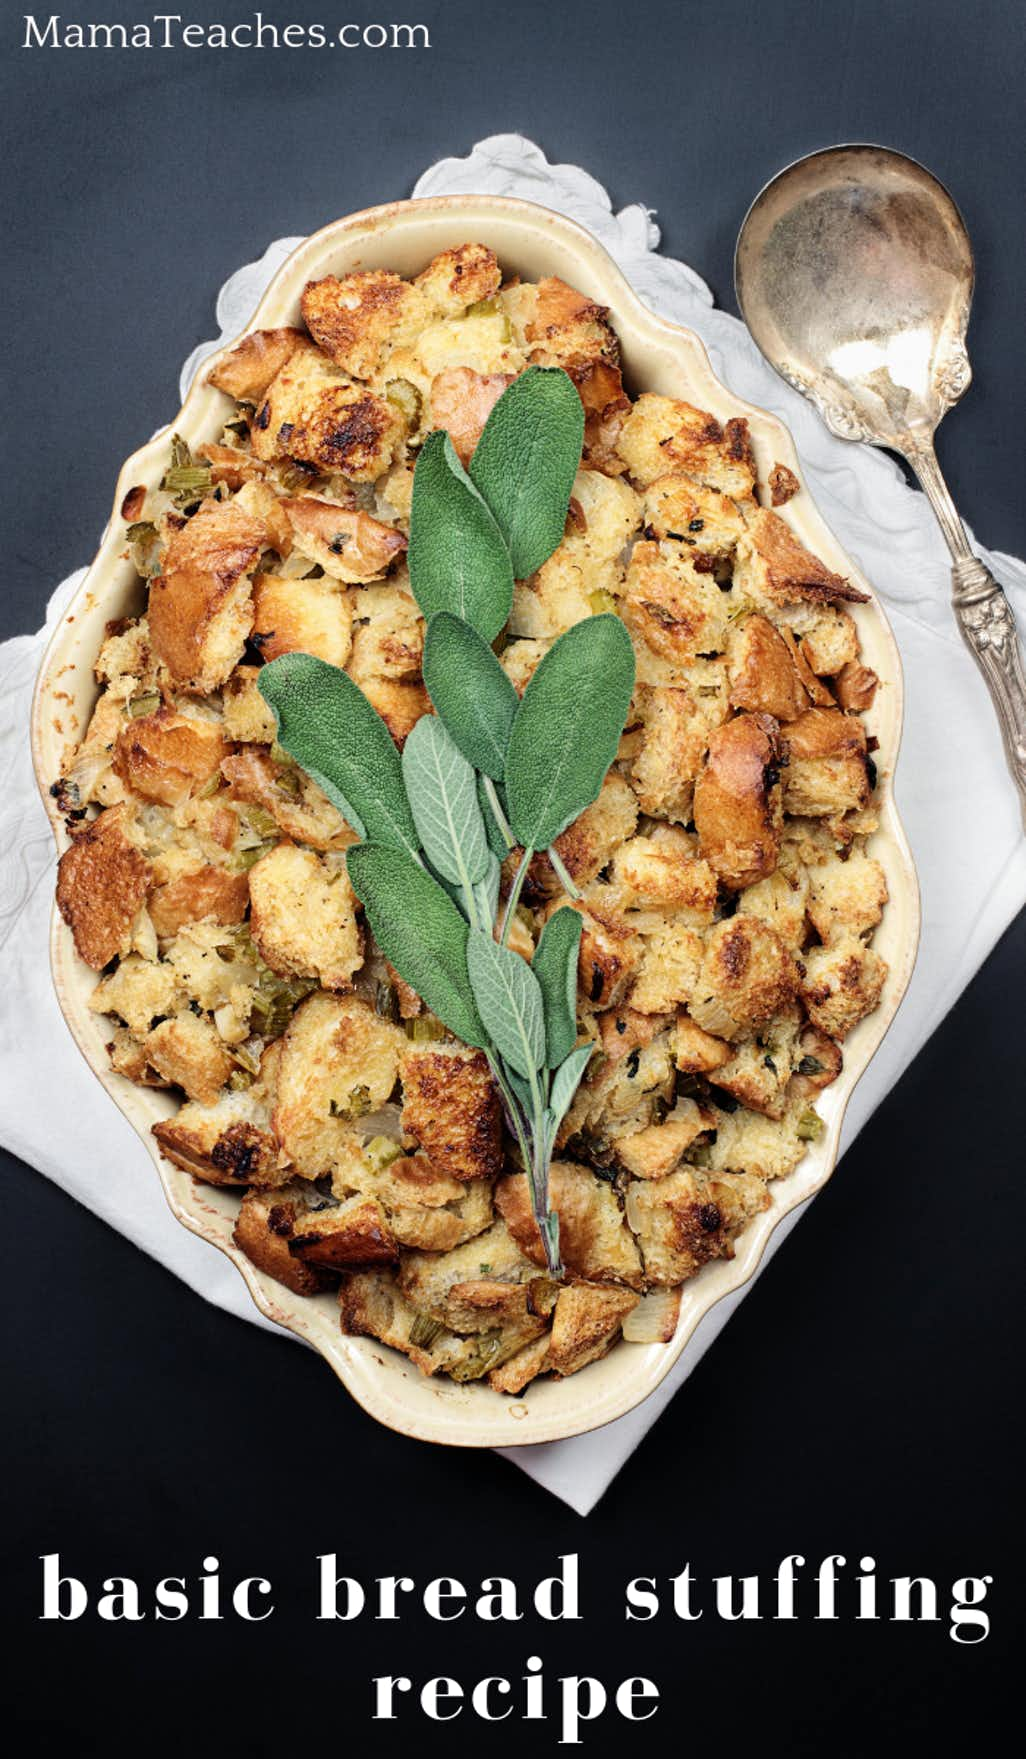 Easy Bread Stuffing Recipe the Whole Family will Love